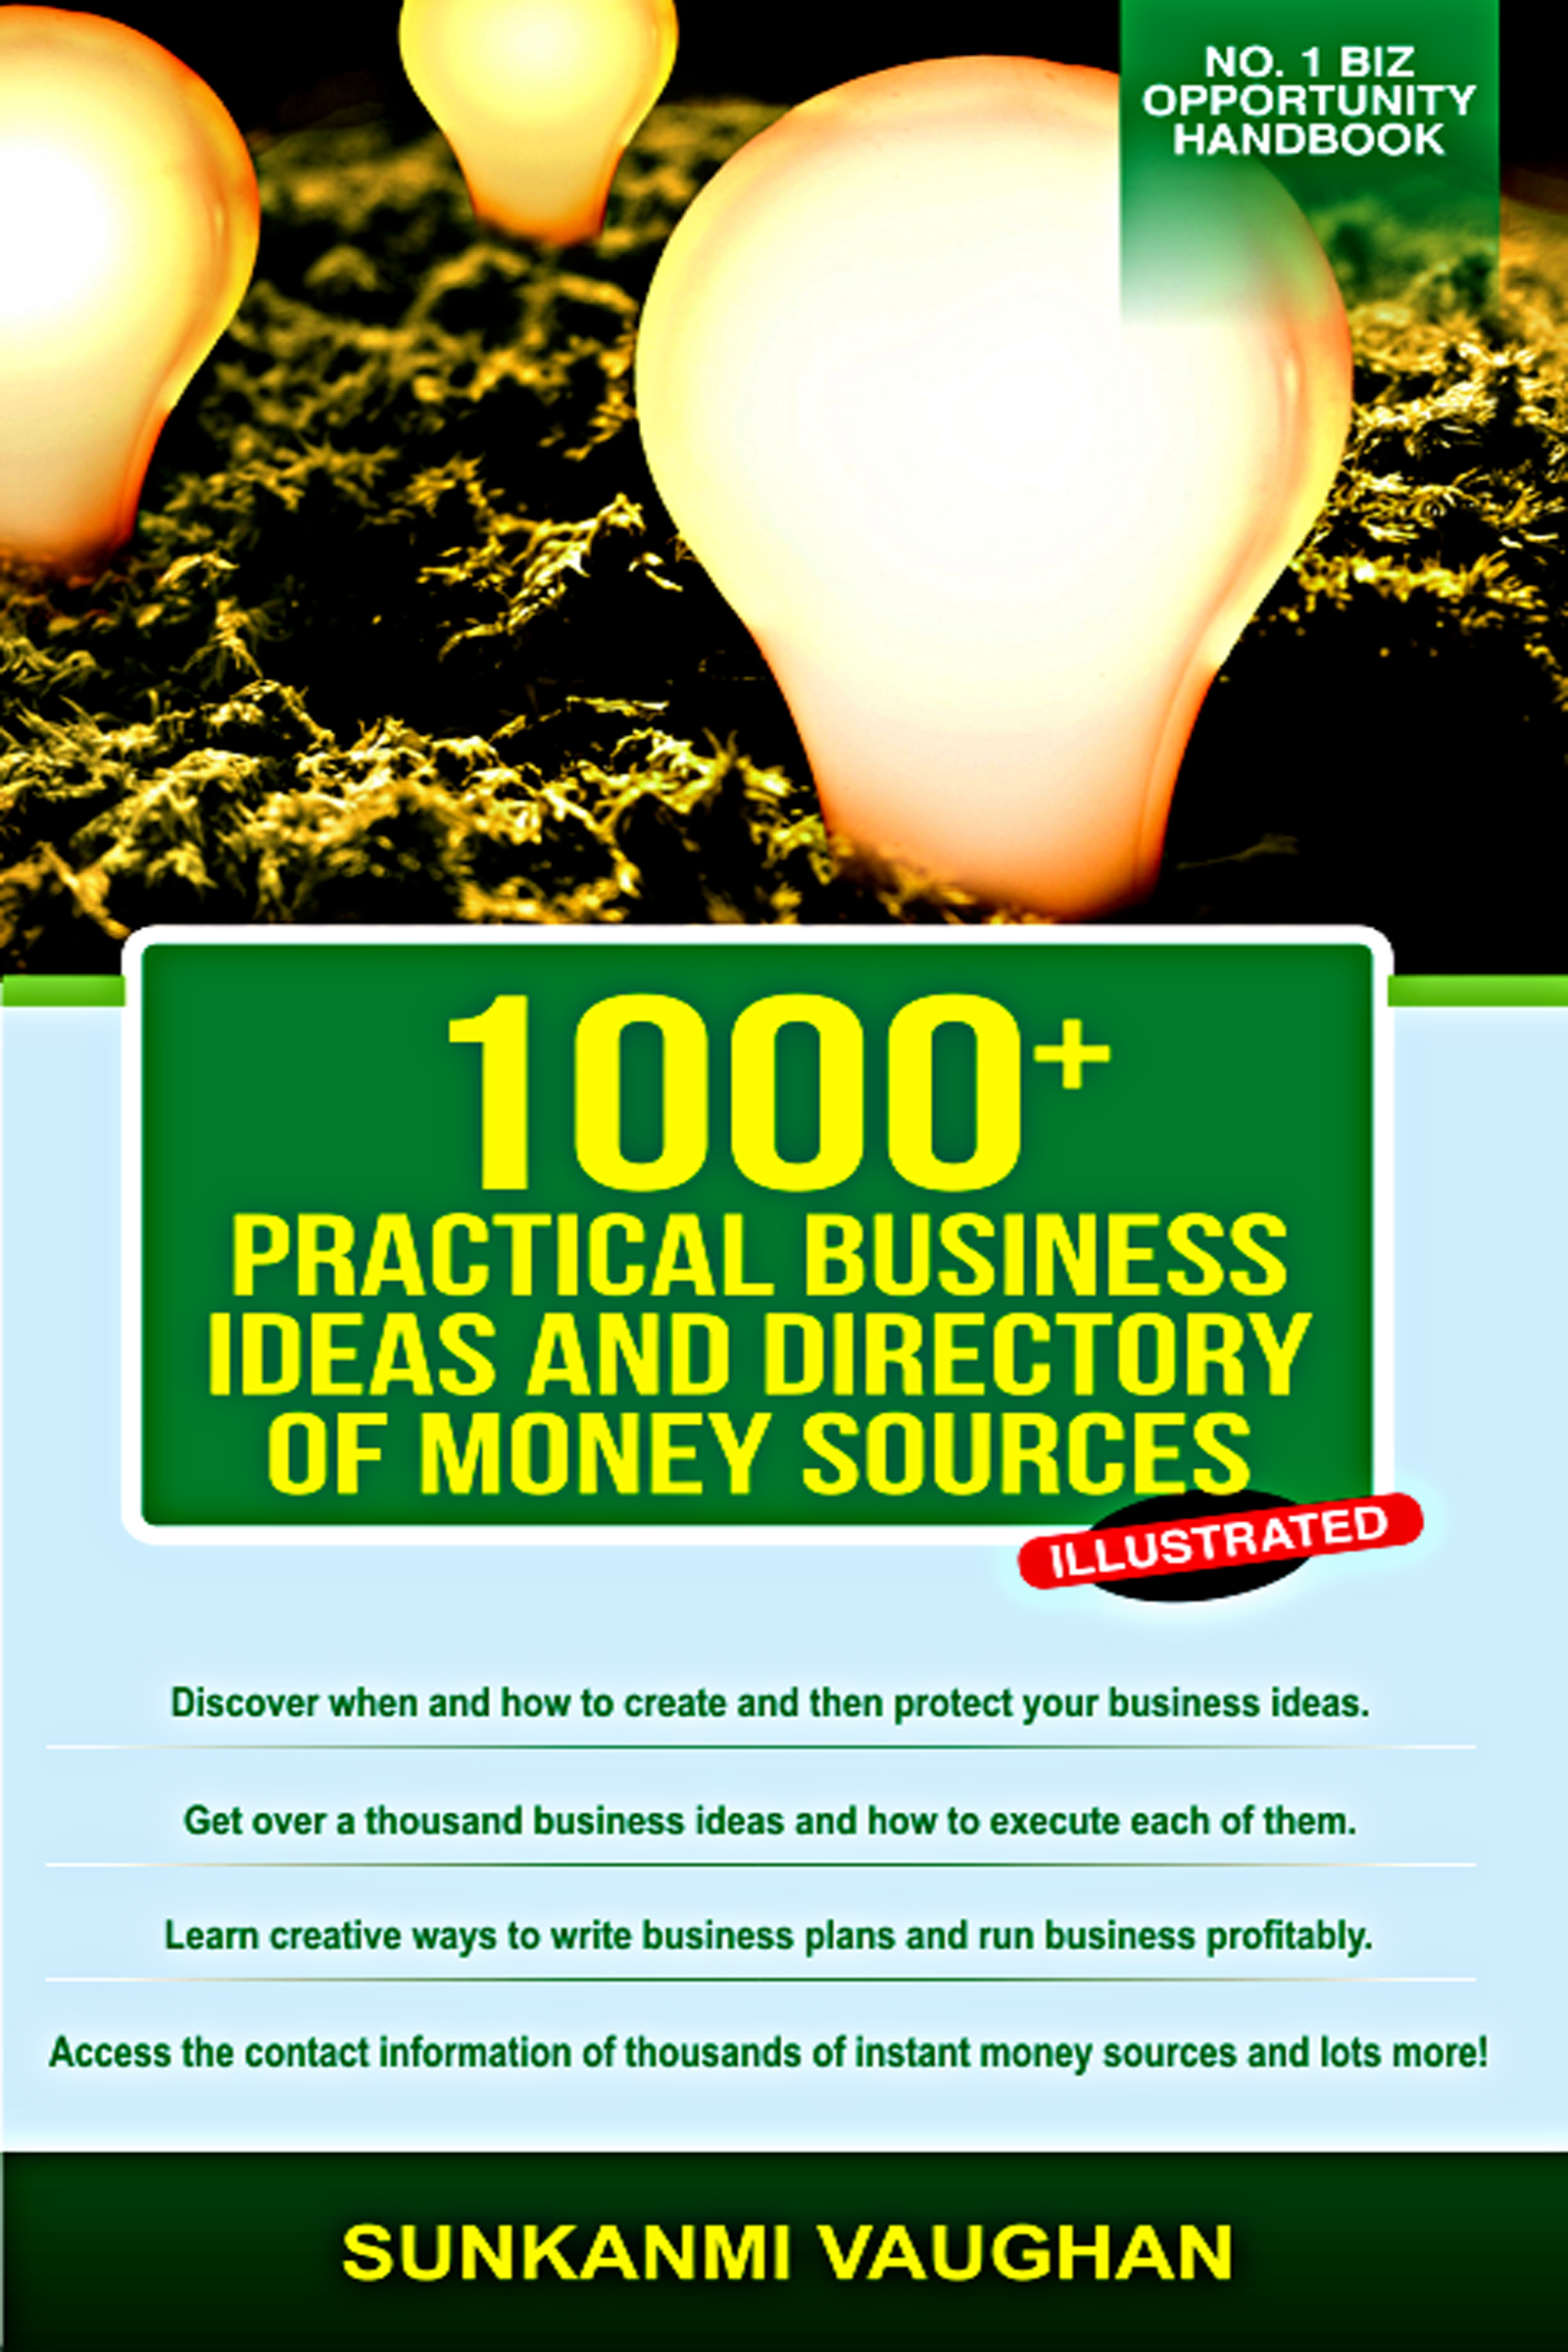 1000+ Practical Business Ideas and Directory of Money Sources, an Ebook by  Sunkanmi Vaughan